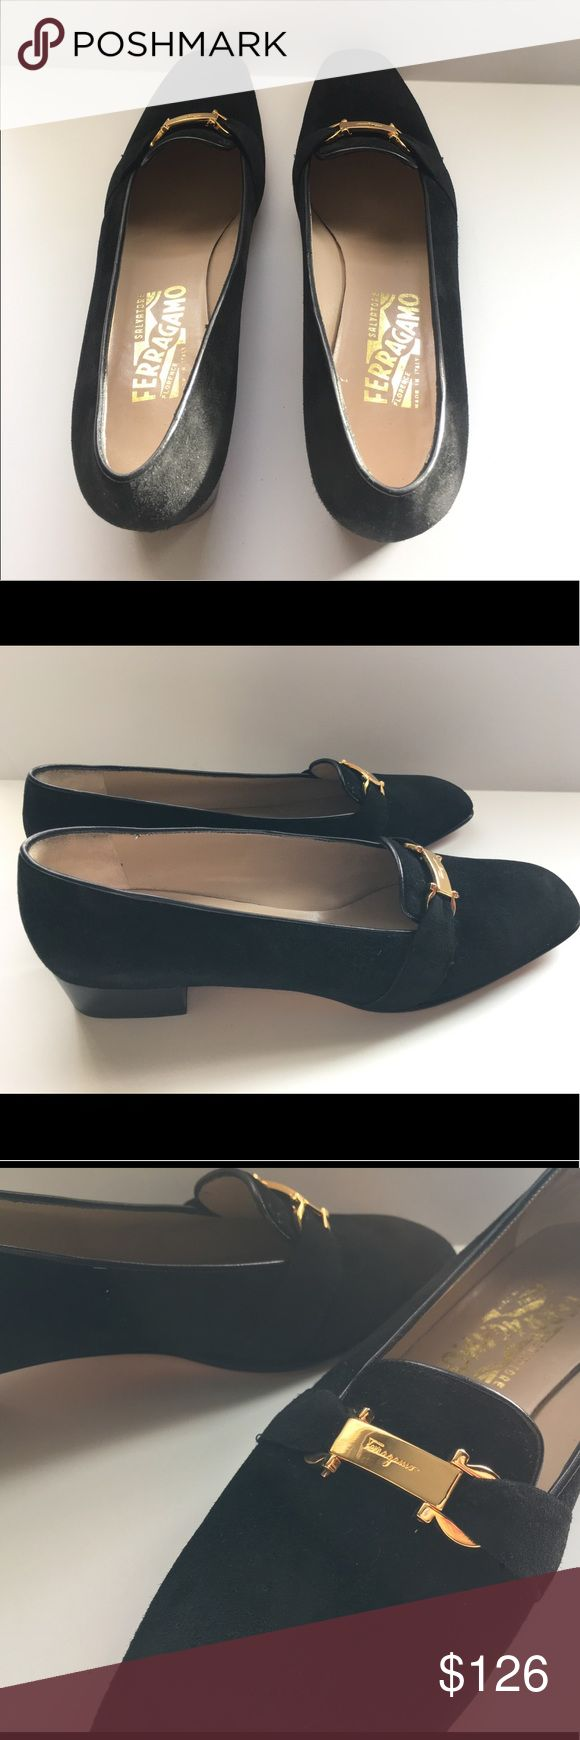 Ferragamo Black Suede Loafers + Gold buckle, sz10 Nearly New Women's Ferragamo Black Suede Slip On Spectator Loafers , 10.    Pre owned in excellent condition.  Black suede loafers Gold branded name plate at the toe Ferragamo Shoes Flats & Loafers